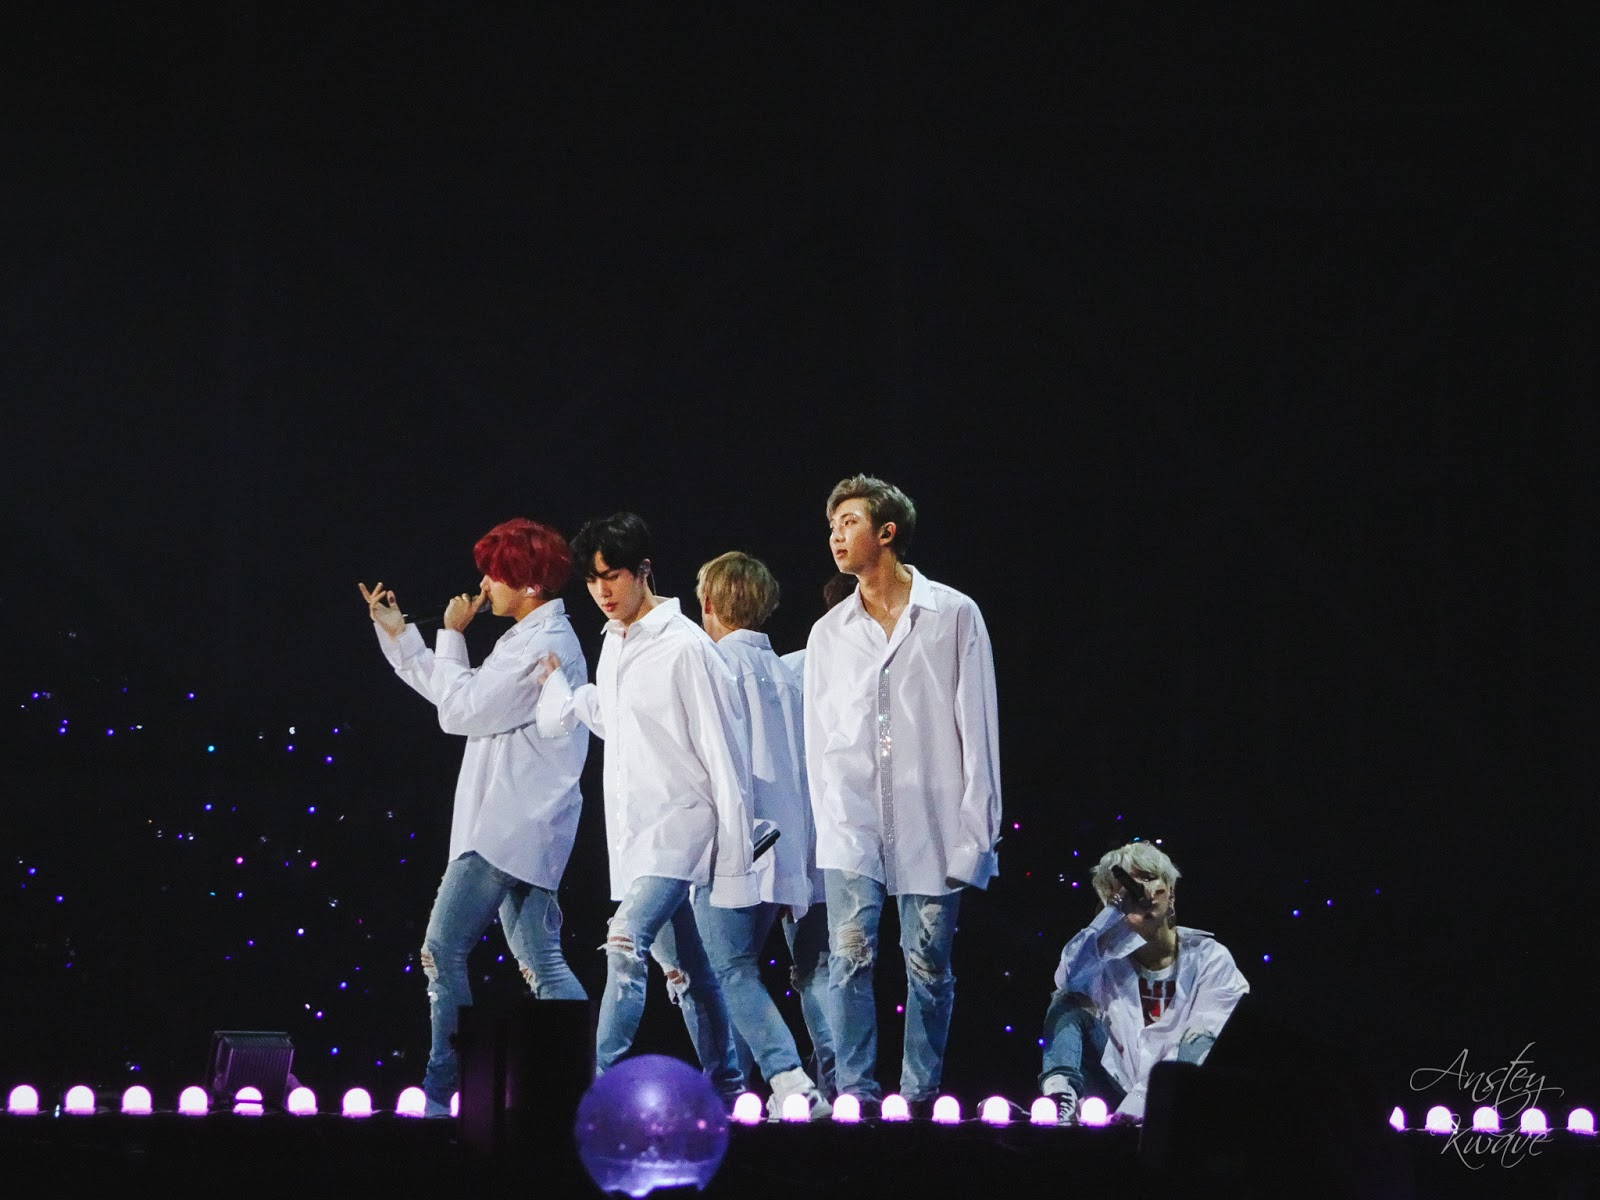 BTS famous Korean k-pop boy band performing on stage at Melon Music Awards (MMA) 2017 in Seoul, South Korea